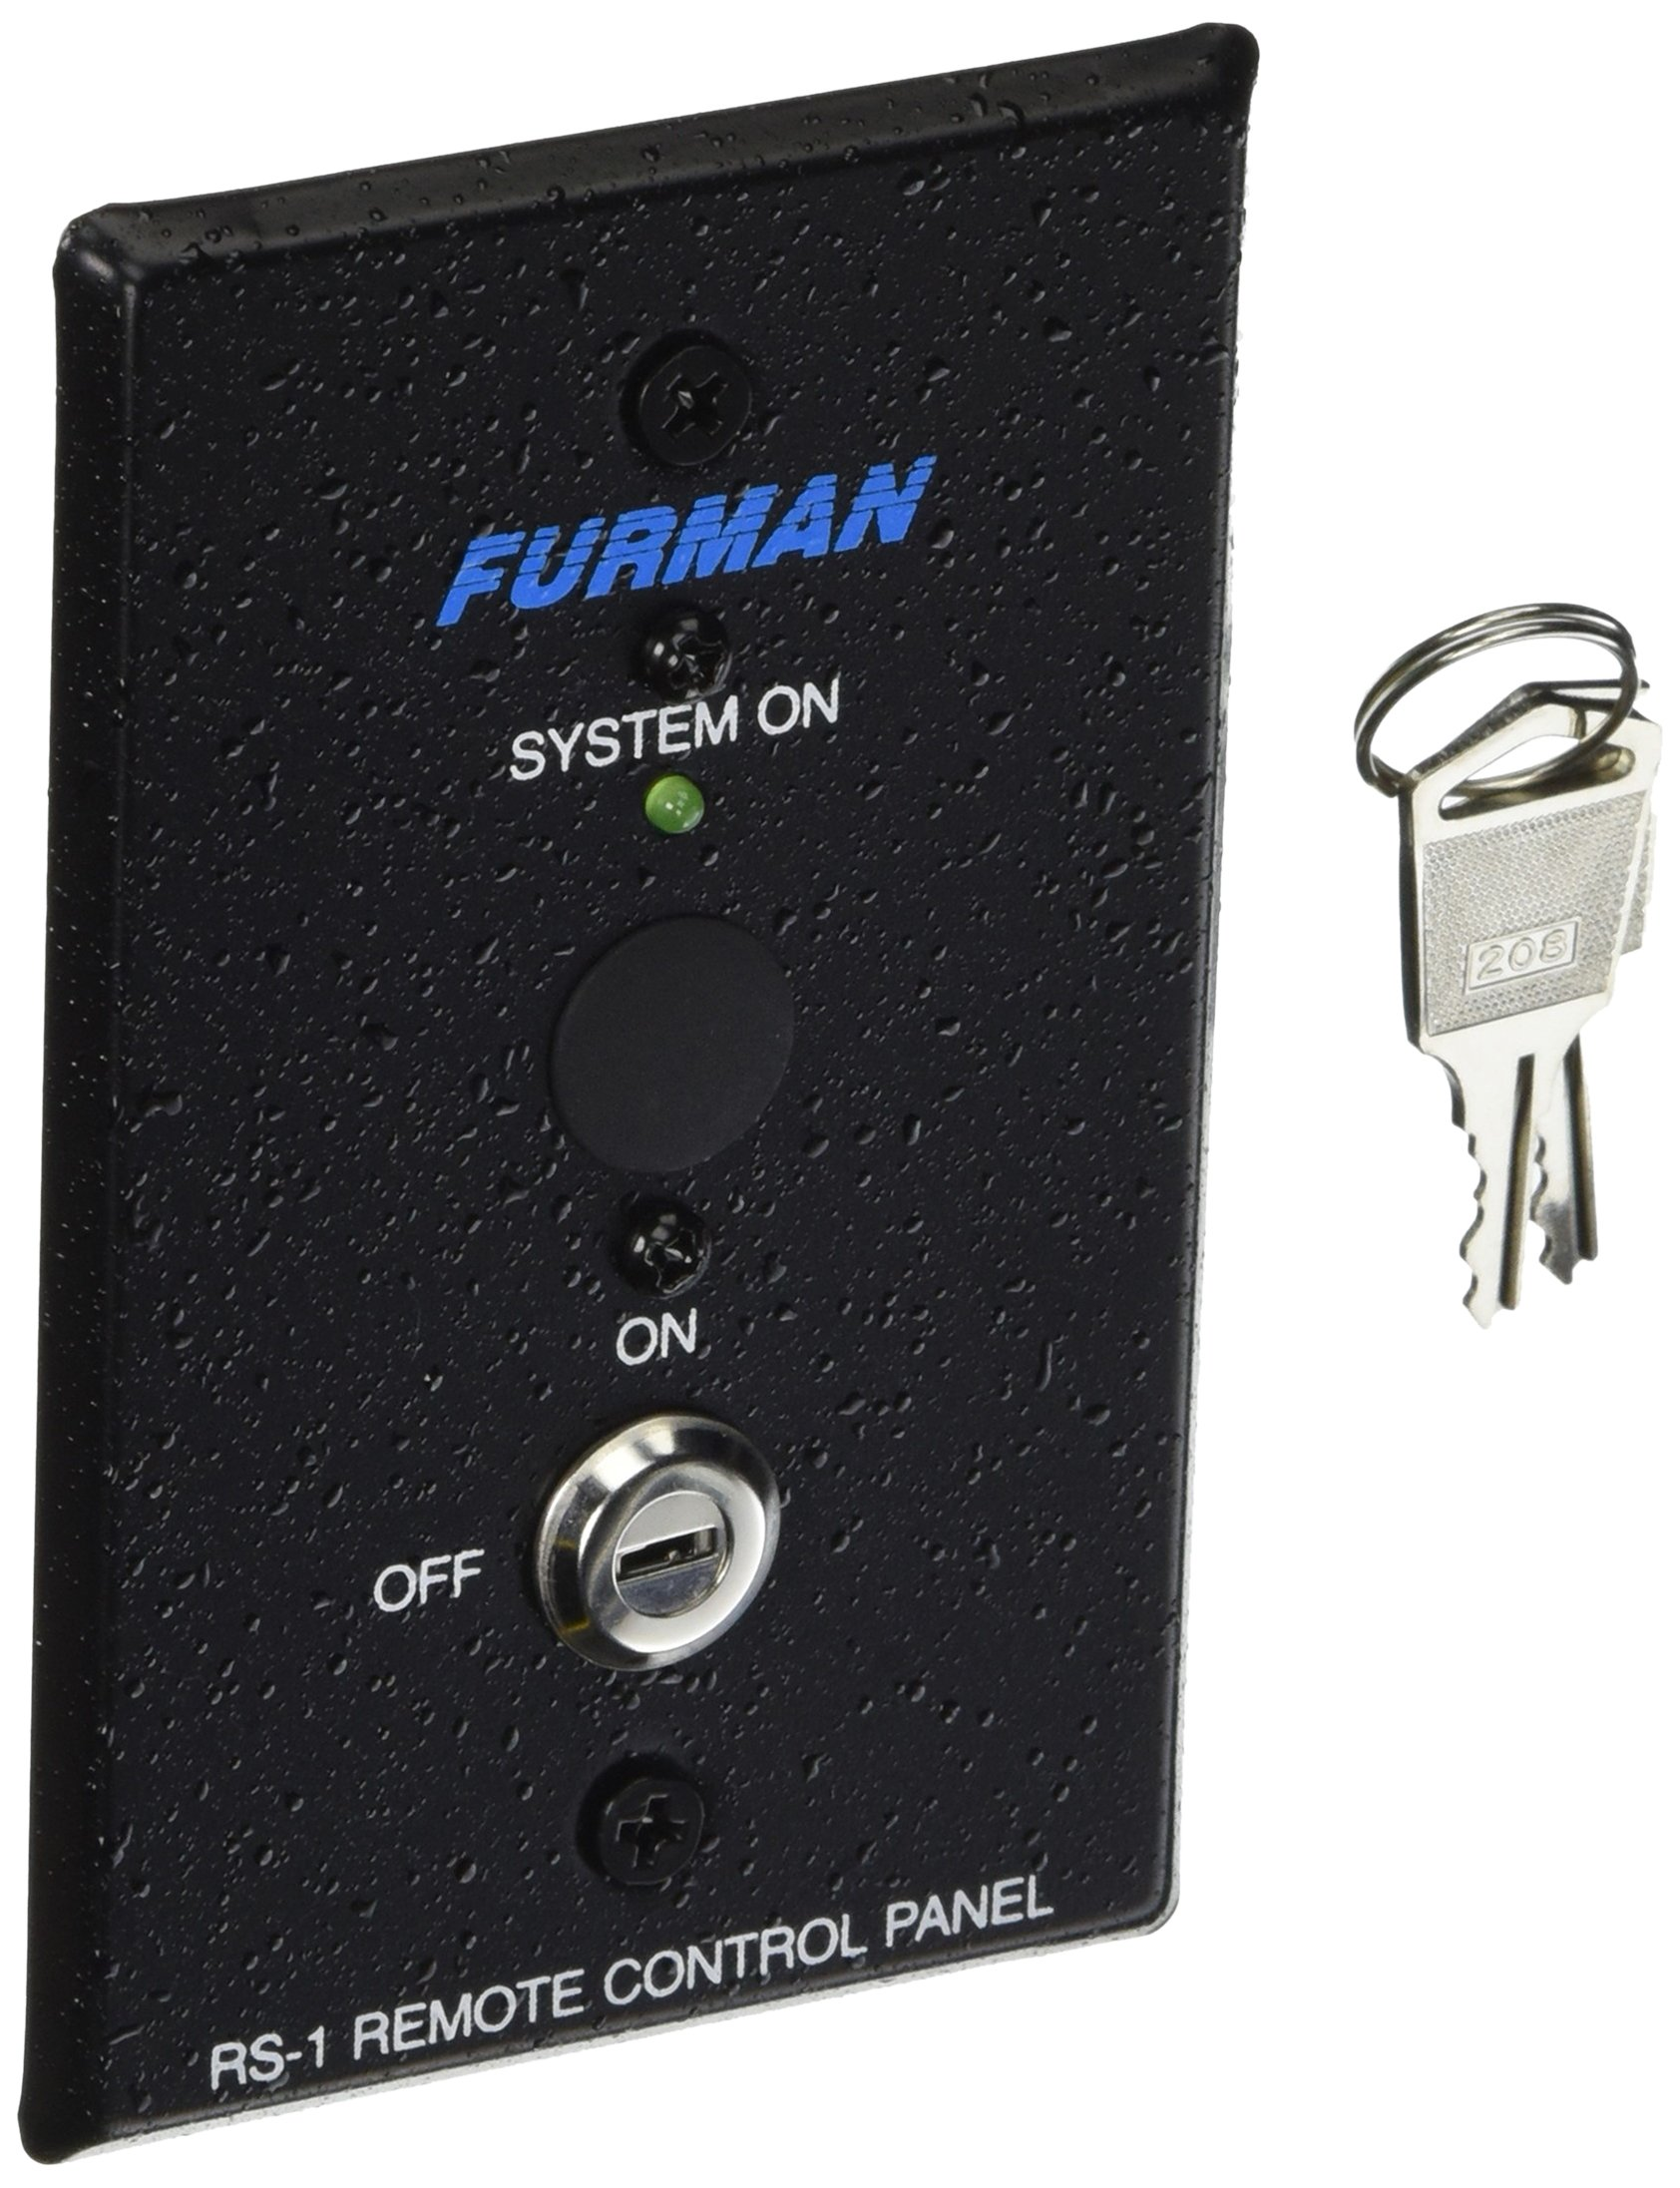 Furman RS-1 Remote System Control of Furman Power Sequencers, Keyswitch Panel, Maintained Contact On/Off Sequence by Furman